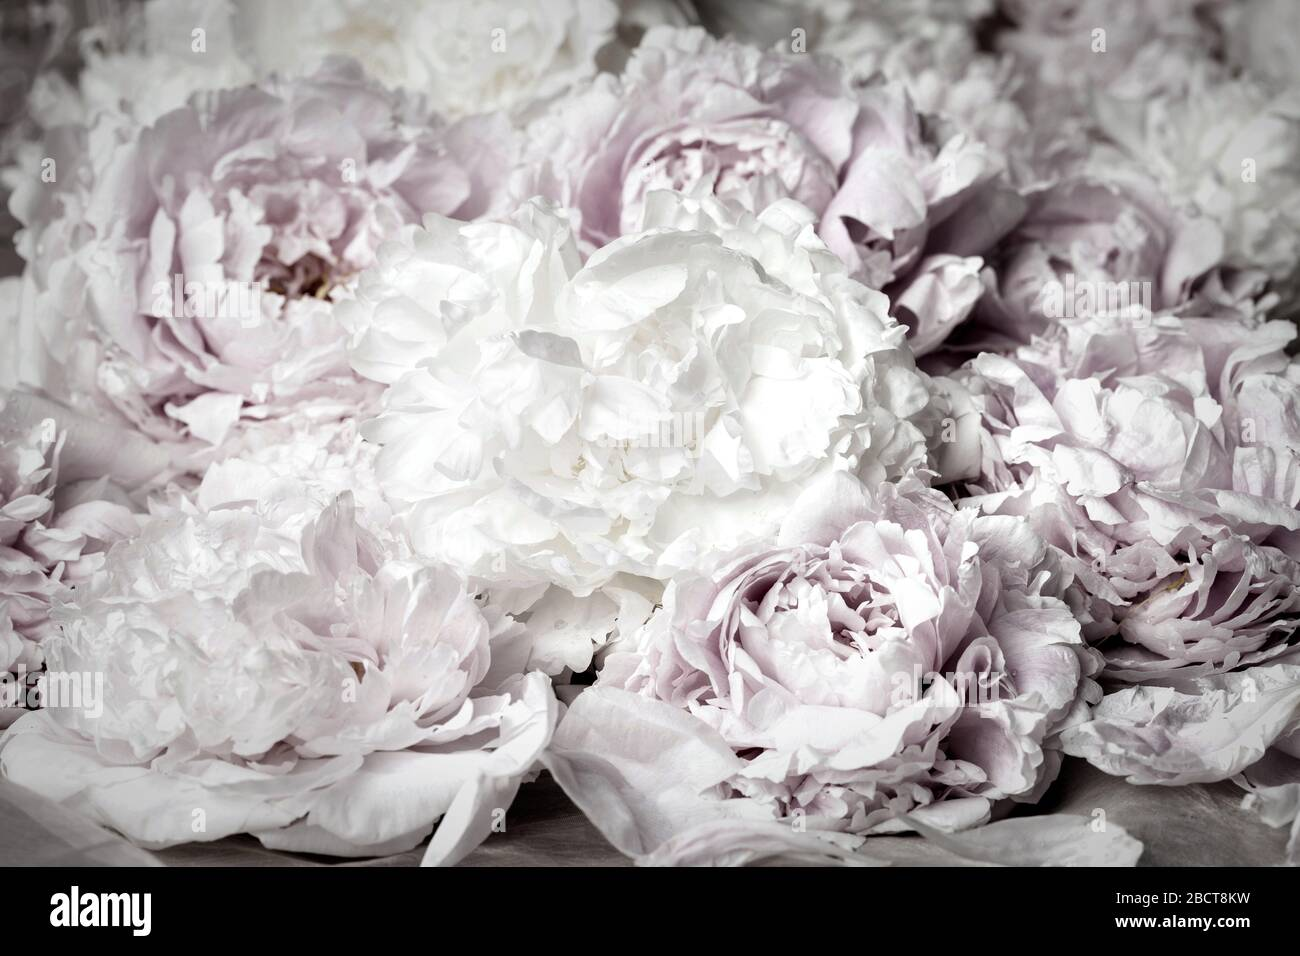 Vintage image of  white - black peony background Stock Photo